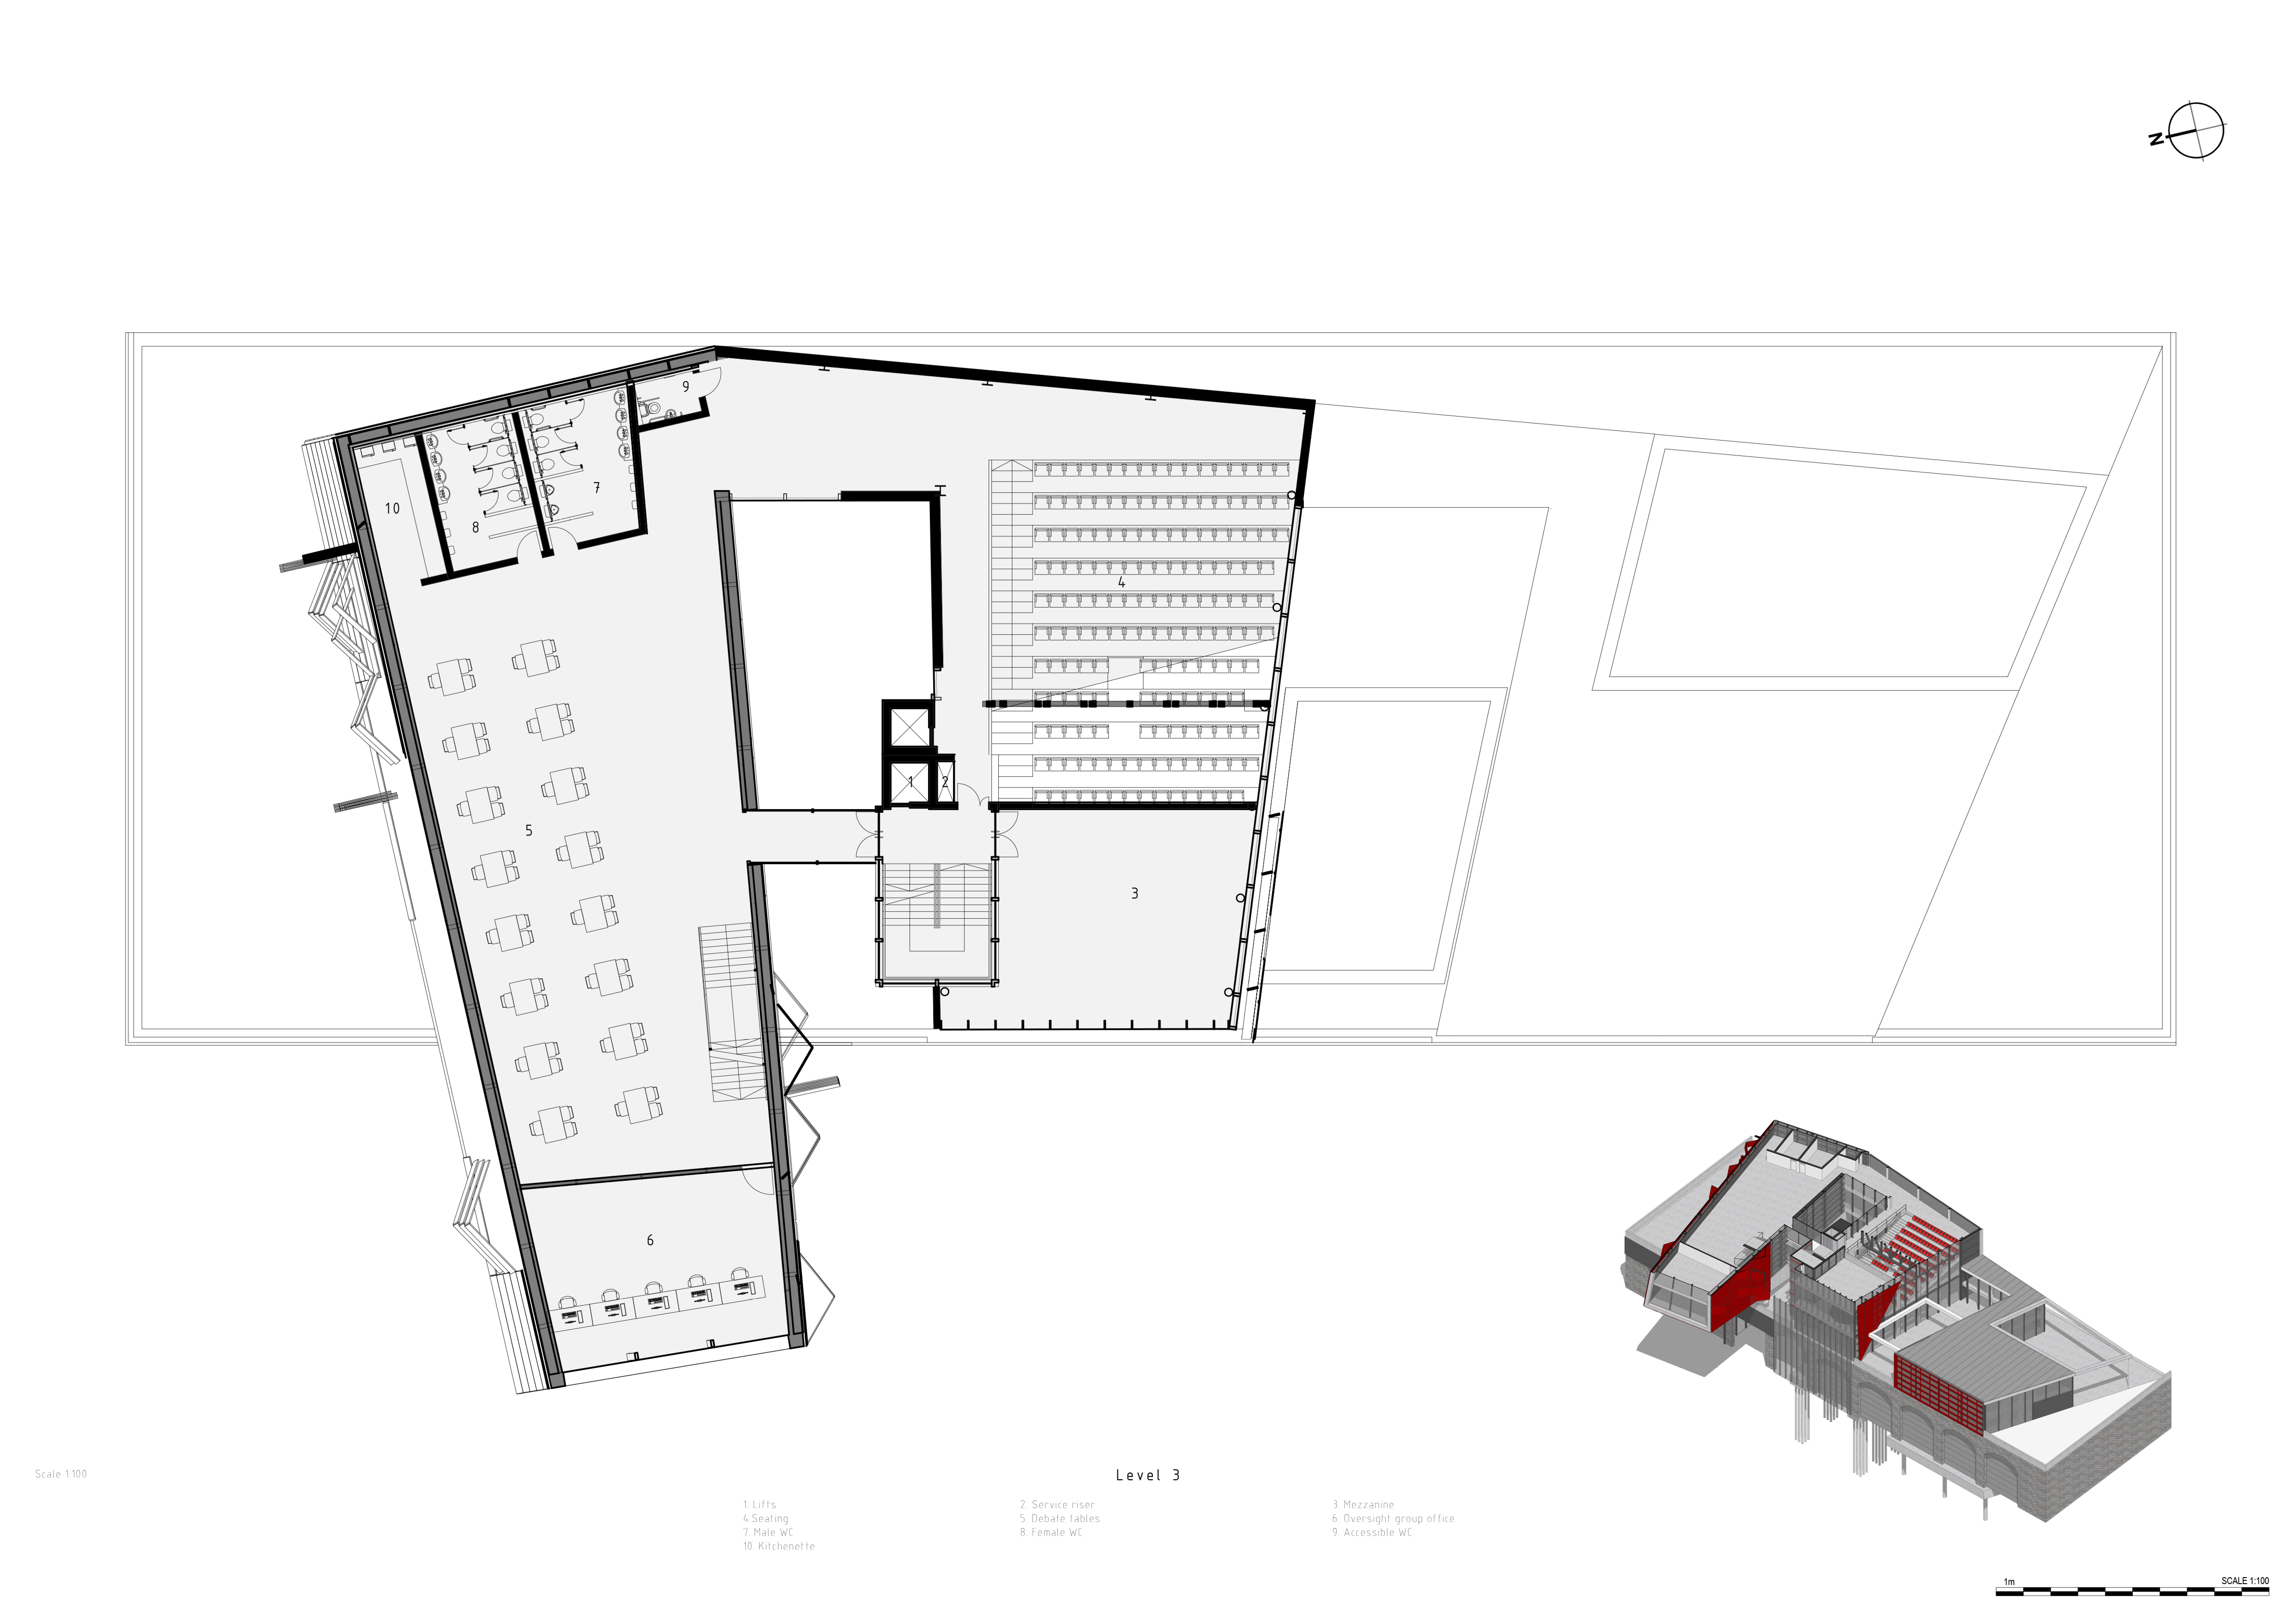 Level 3 - Showing the relationship between the lecture theatre, public debate forum and oversight offices.